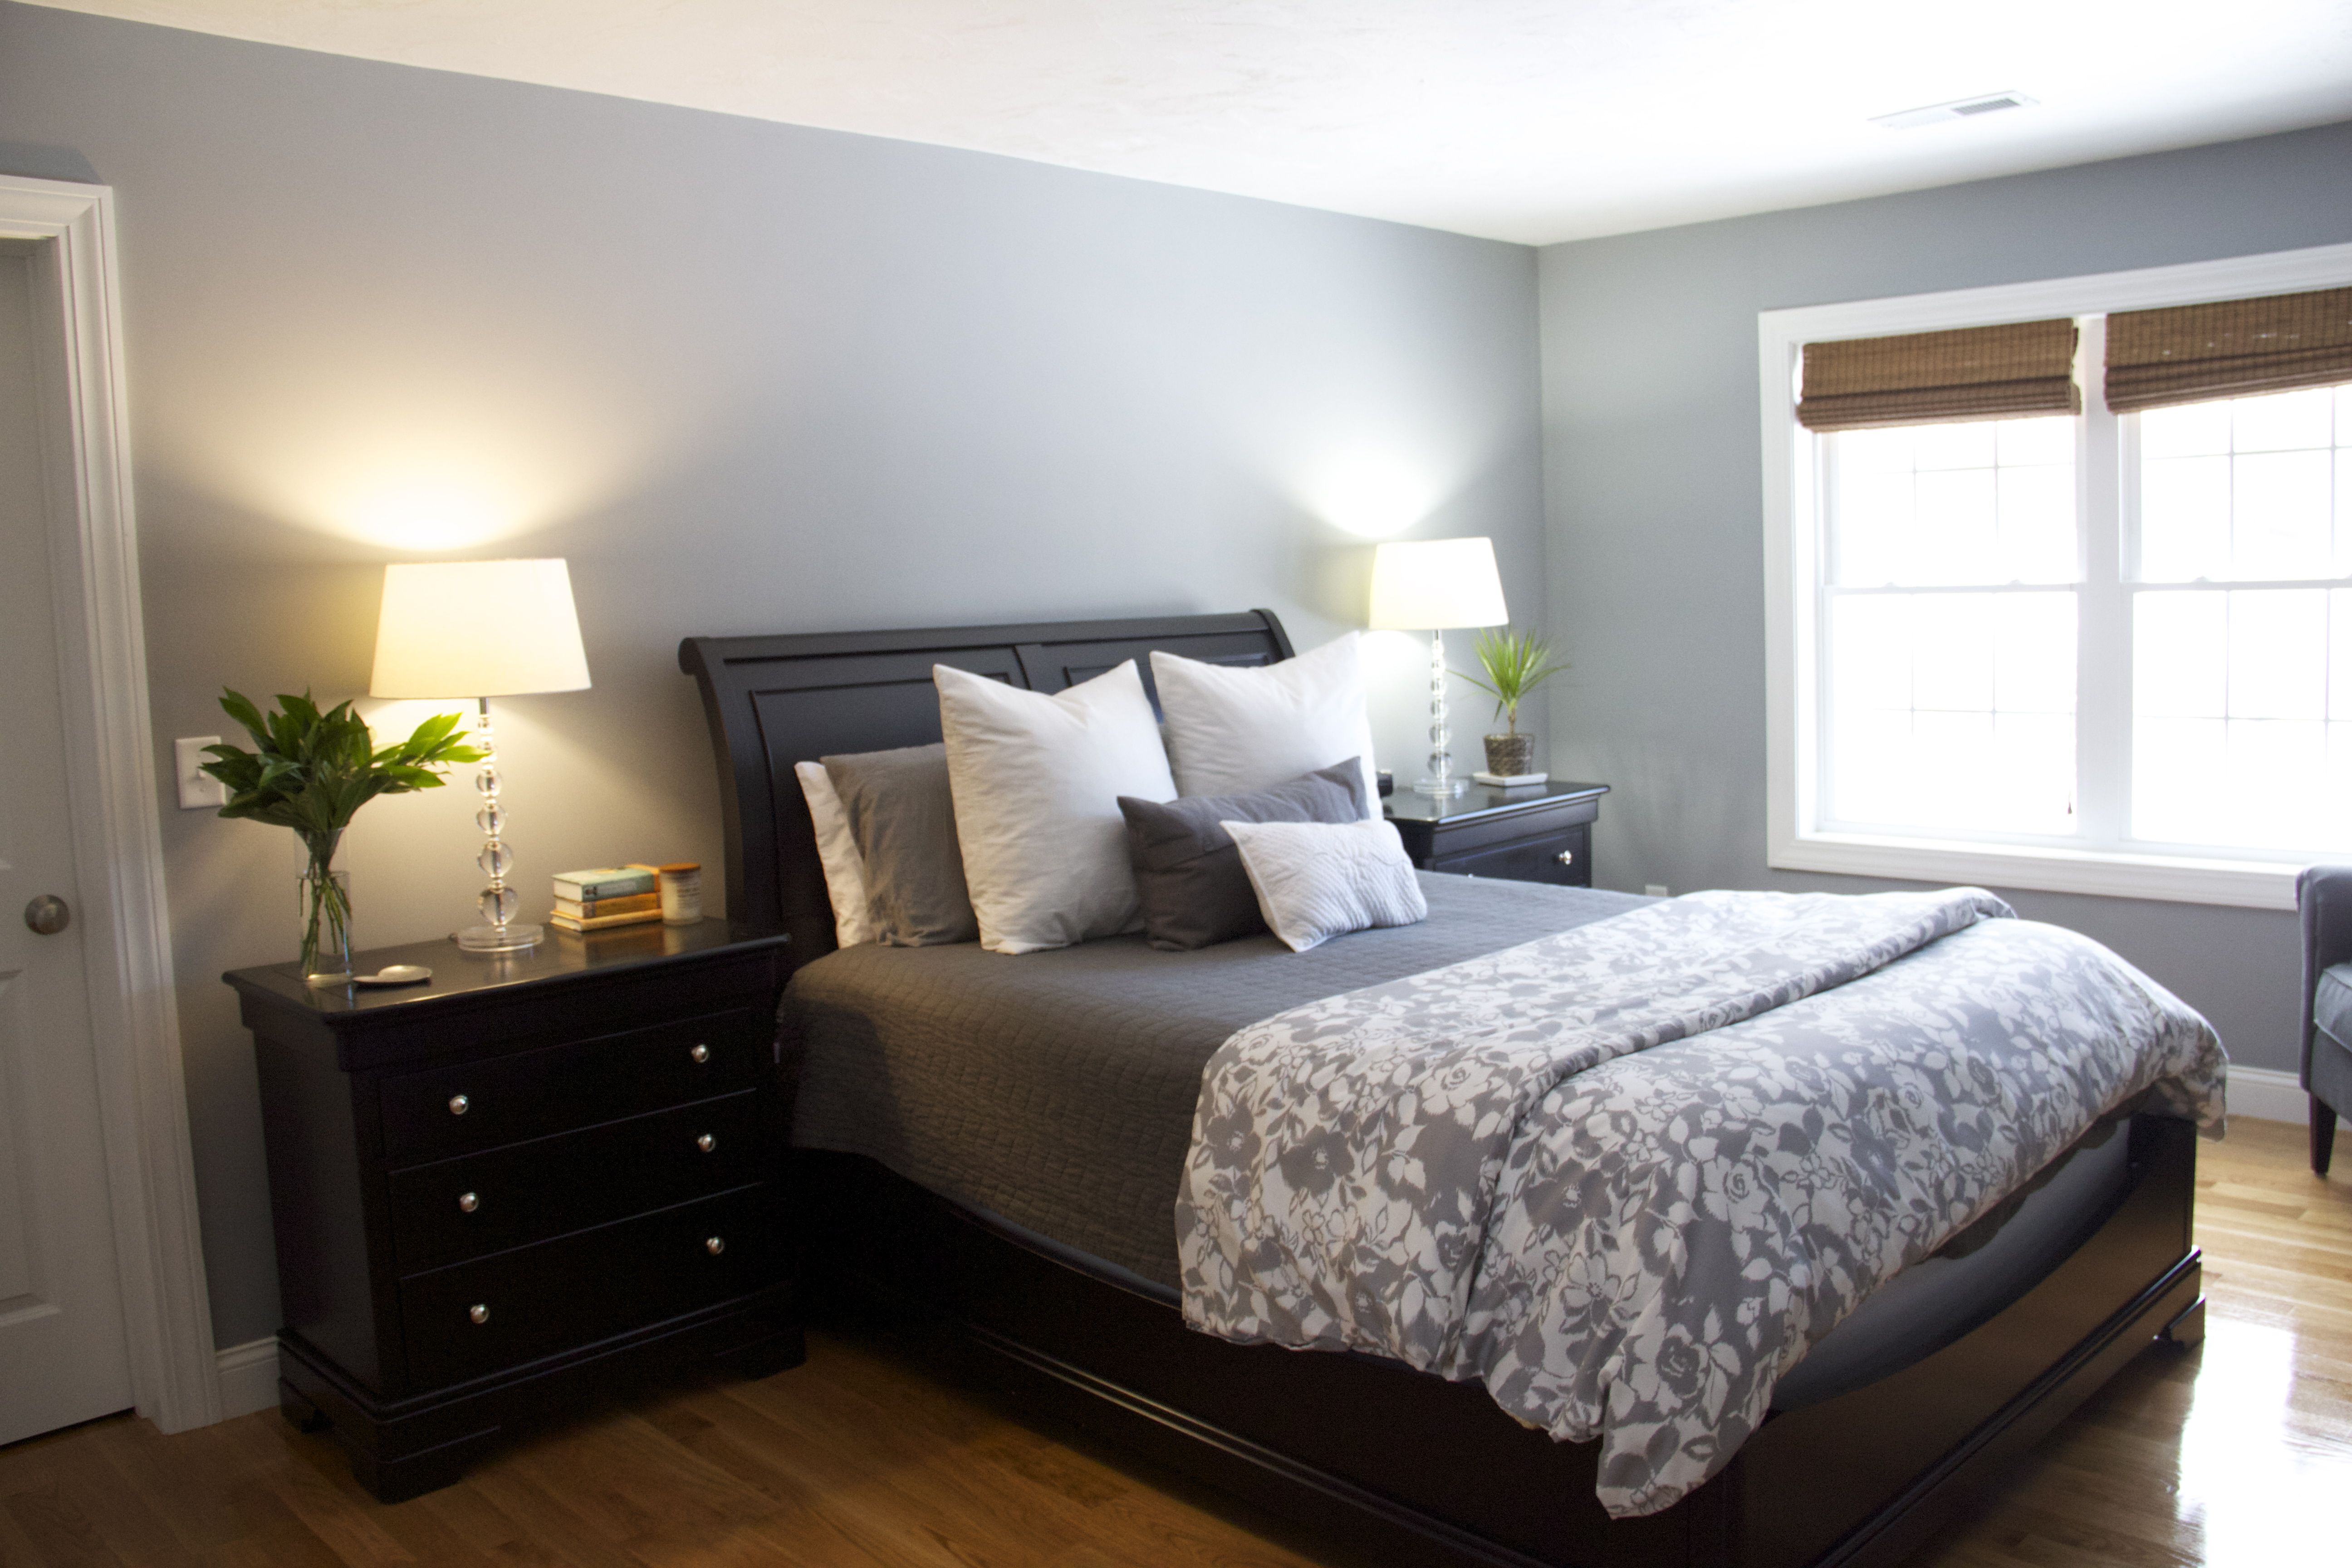 master bedroom ideas on a budget pinterest apartment on diy home decor on a budget apartment ideas id=94594